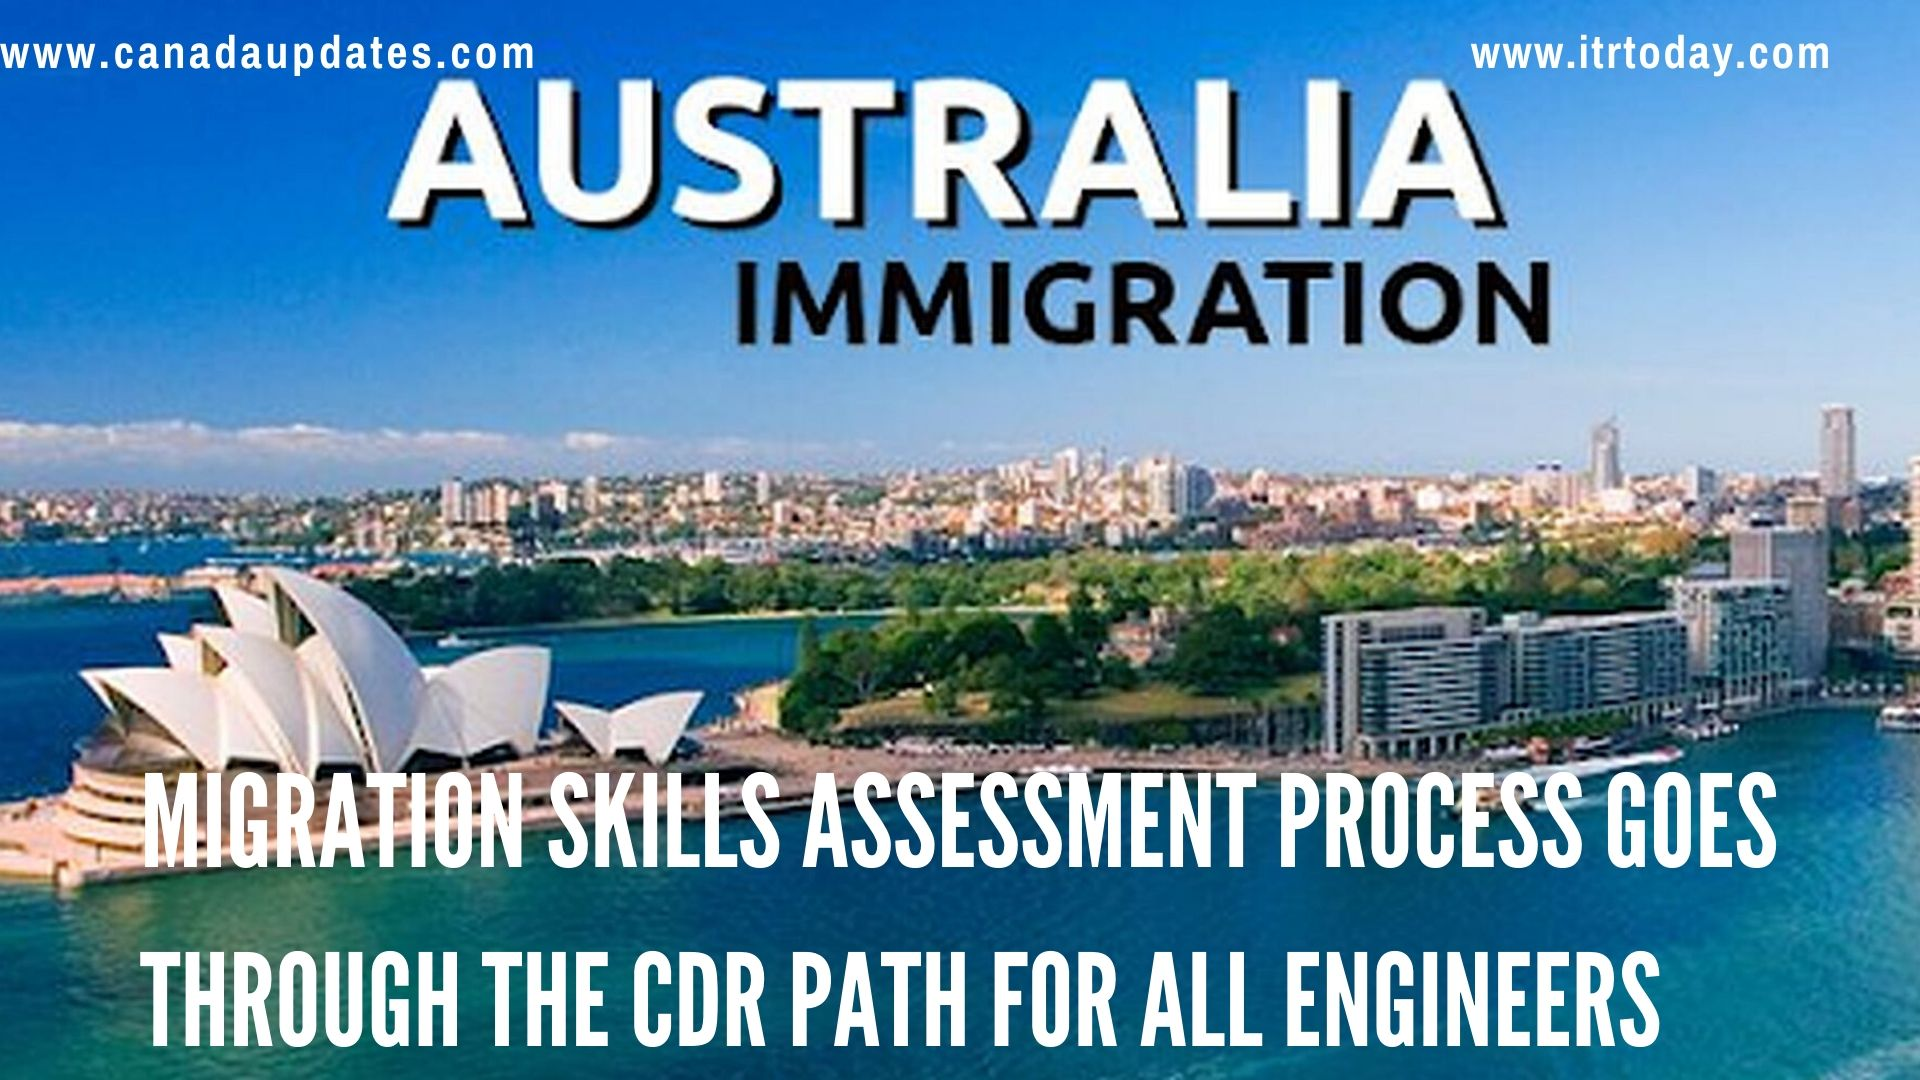 Immigration to Australia as an Engineer 4